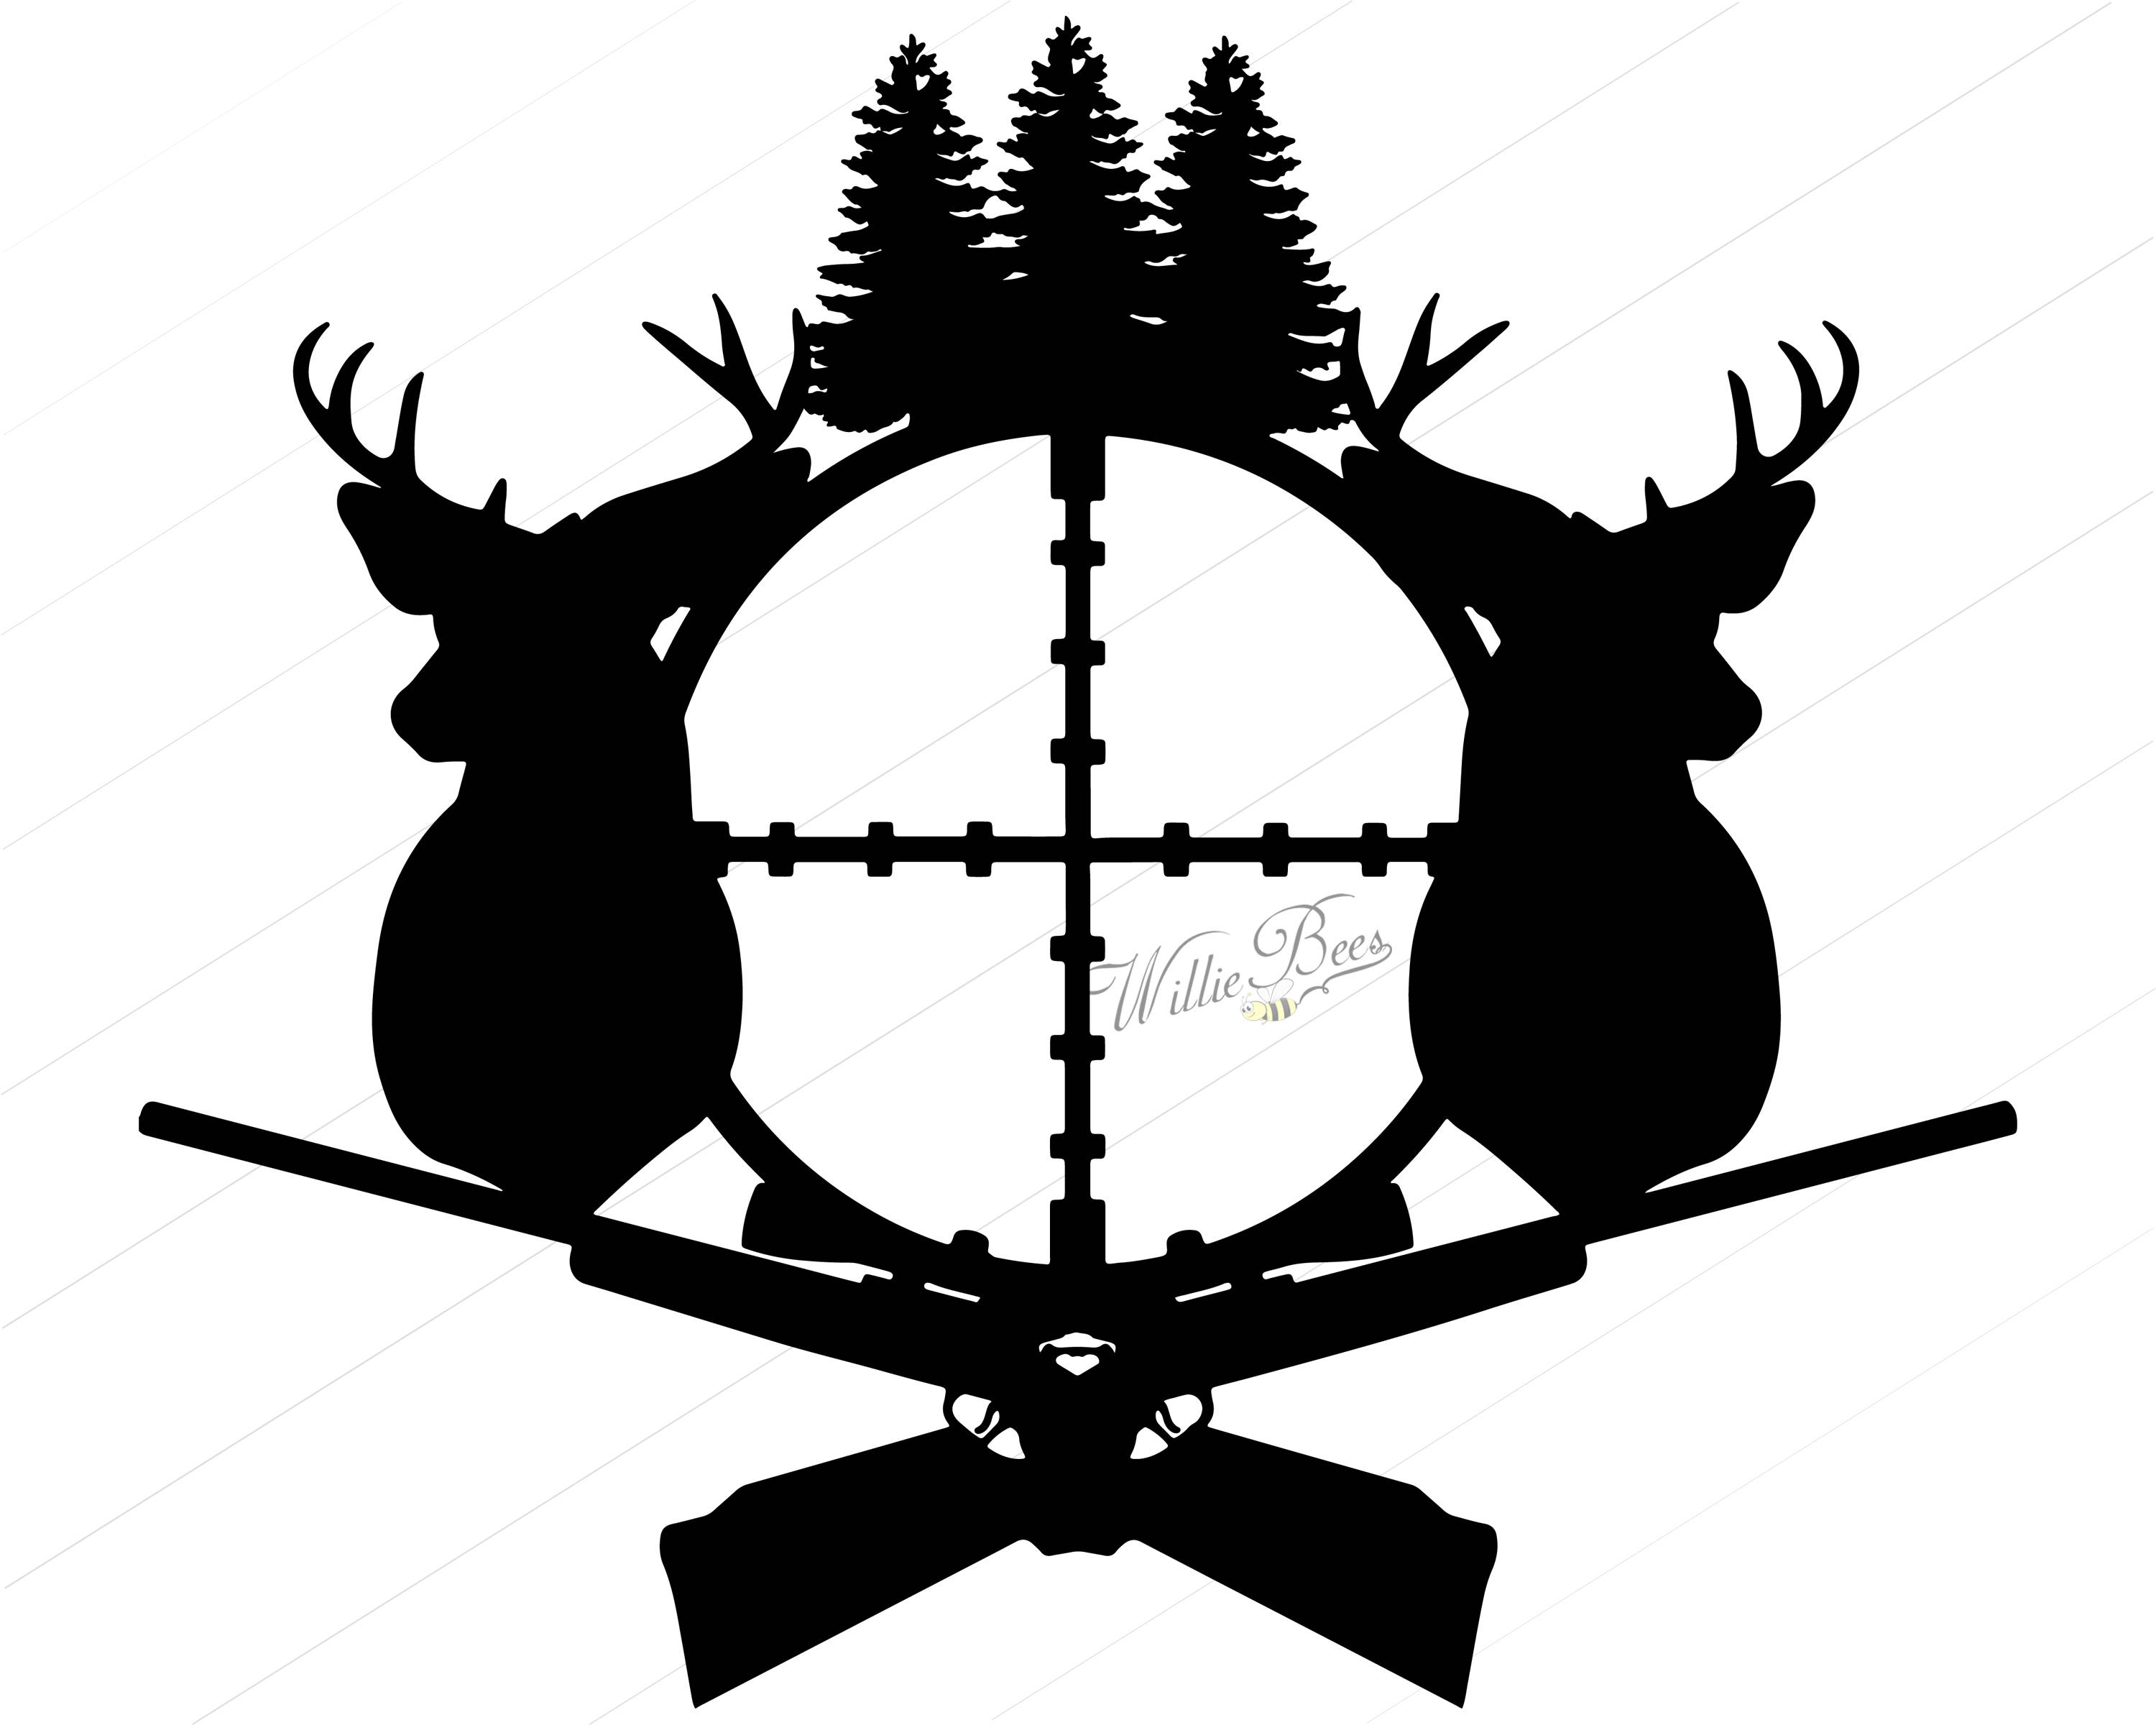 Cliparts free download best. Hunting clipart deer rifle